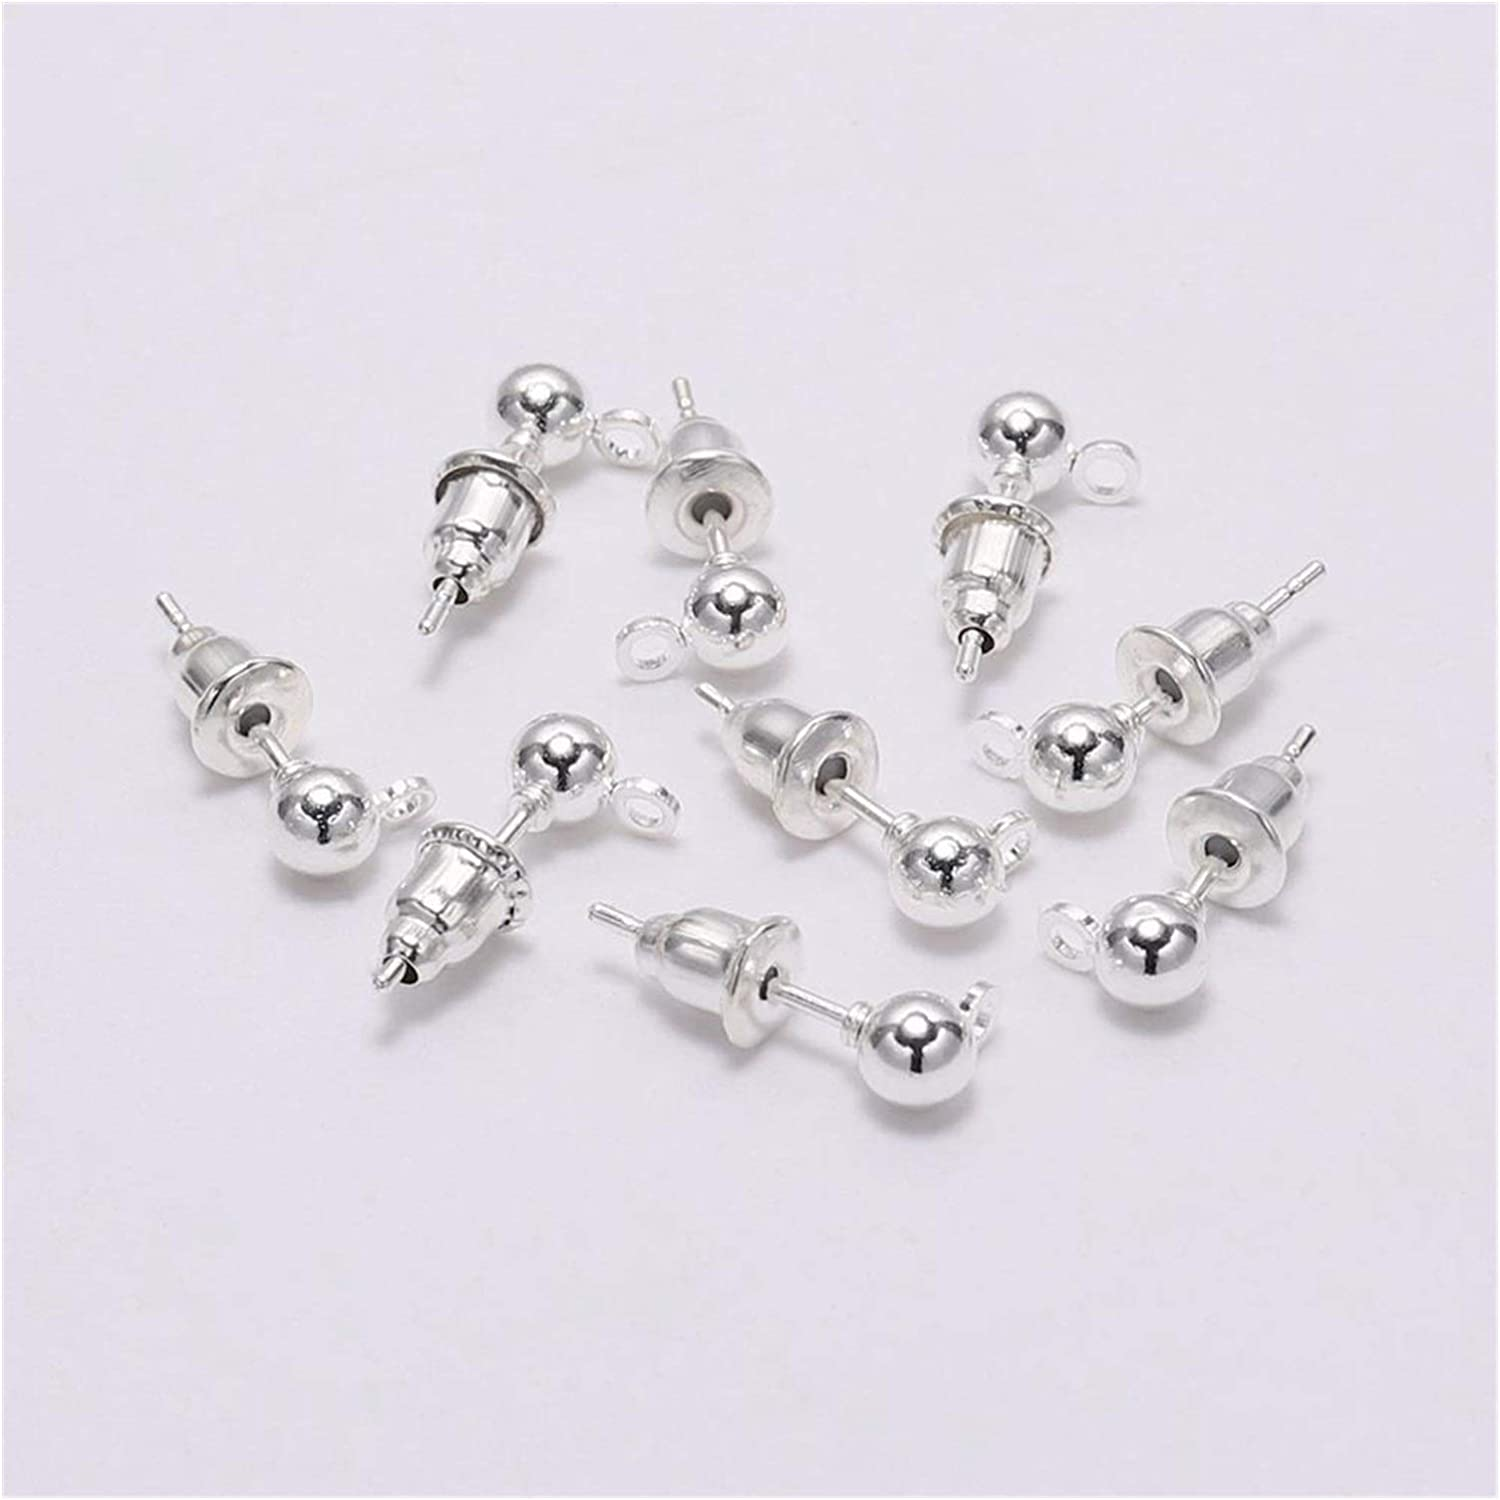 Fixed price for sale WESET 50pcs lot 3 4 5mm Pin Now on sale Stud Earring Basic Pins Findings Sto